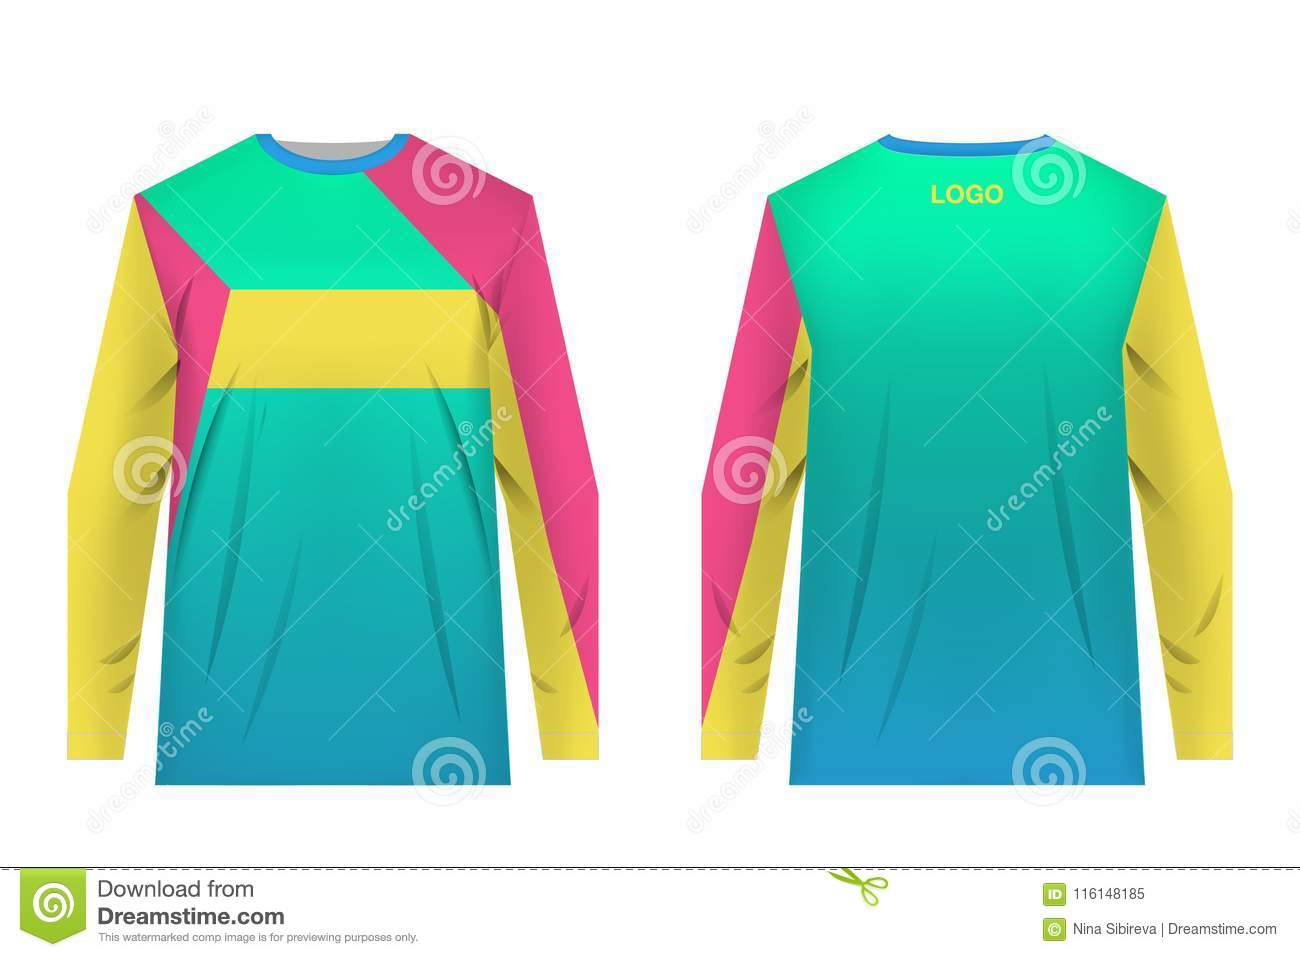 a8c18e1ec Jersey design for extreme cycling. Mountain bike jersey. Vector. Sublimation  printing. Template. Teal gradient. Yellow and red geometry.